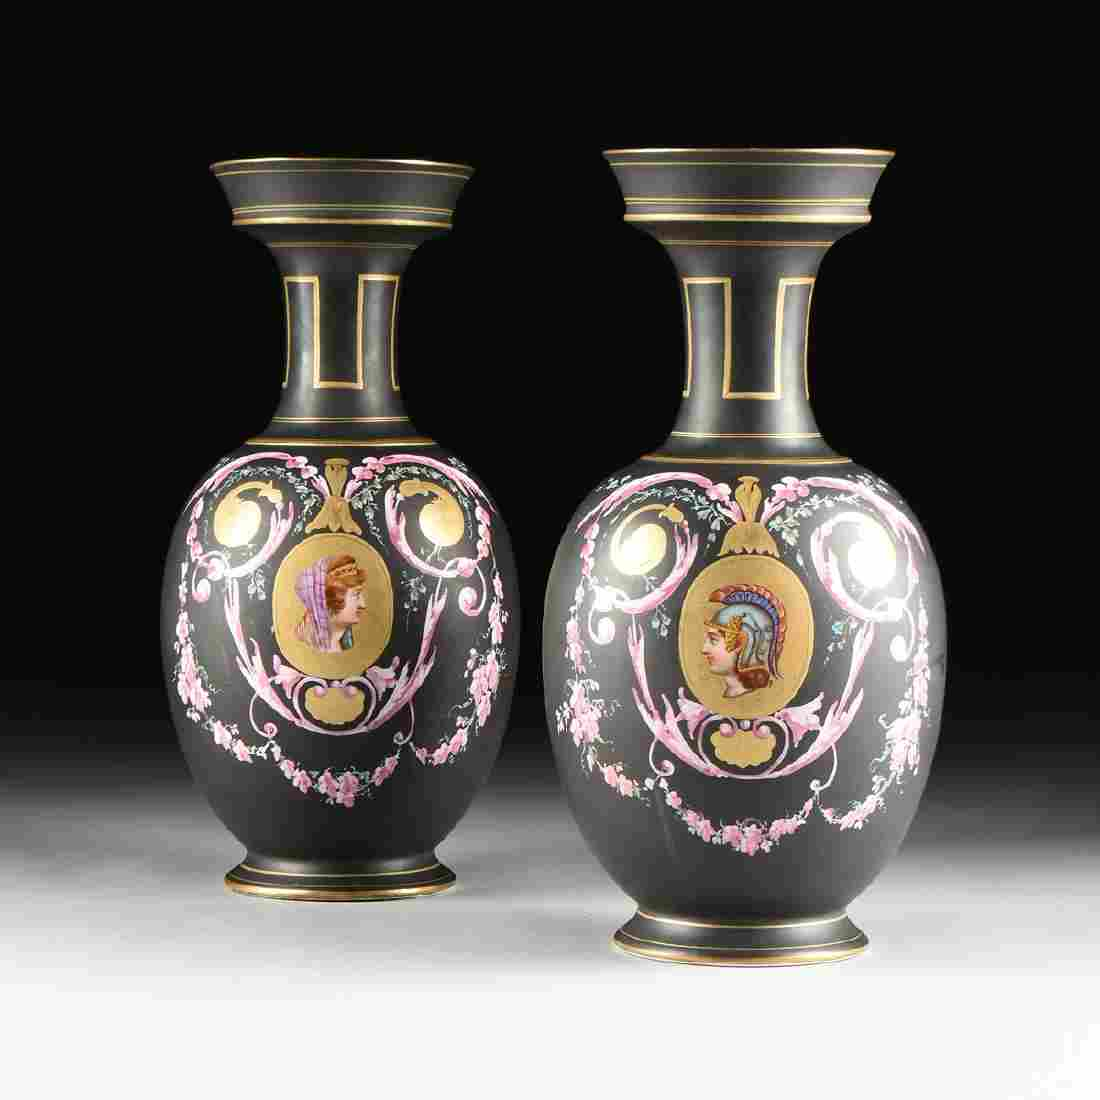 A PAIR OF FRENCH OLD/VIEUX PARIS GILT AND POLYCHROME